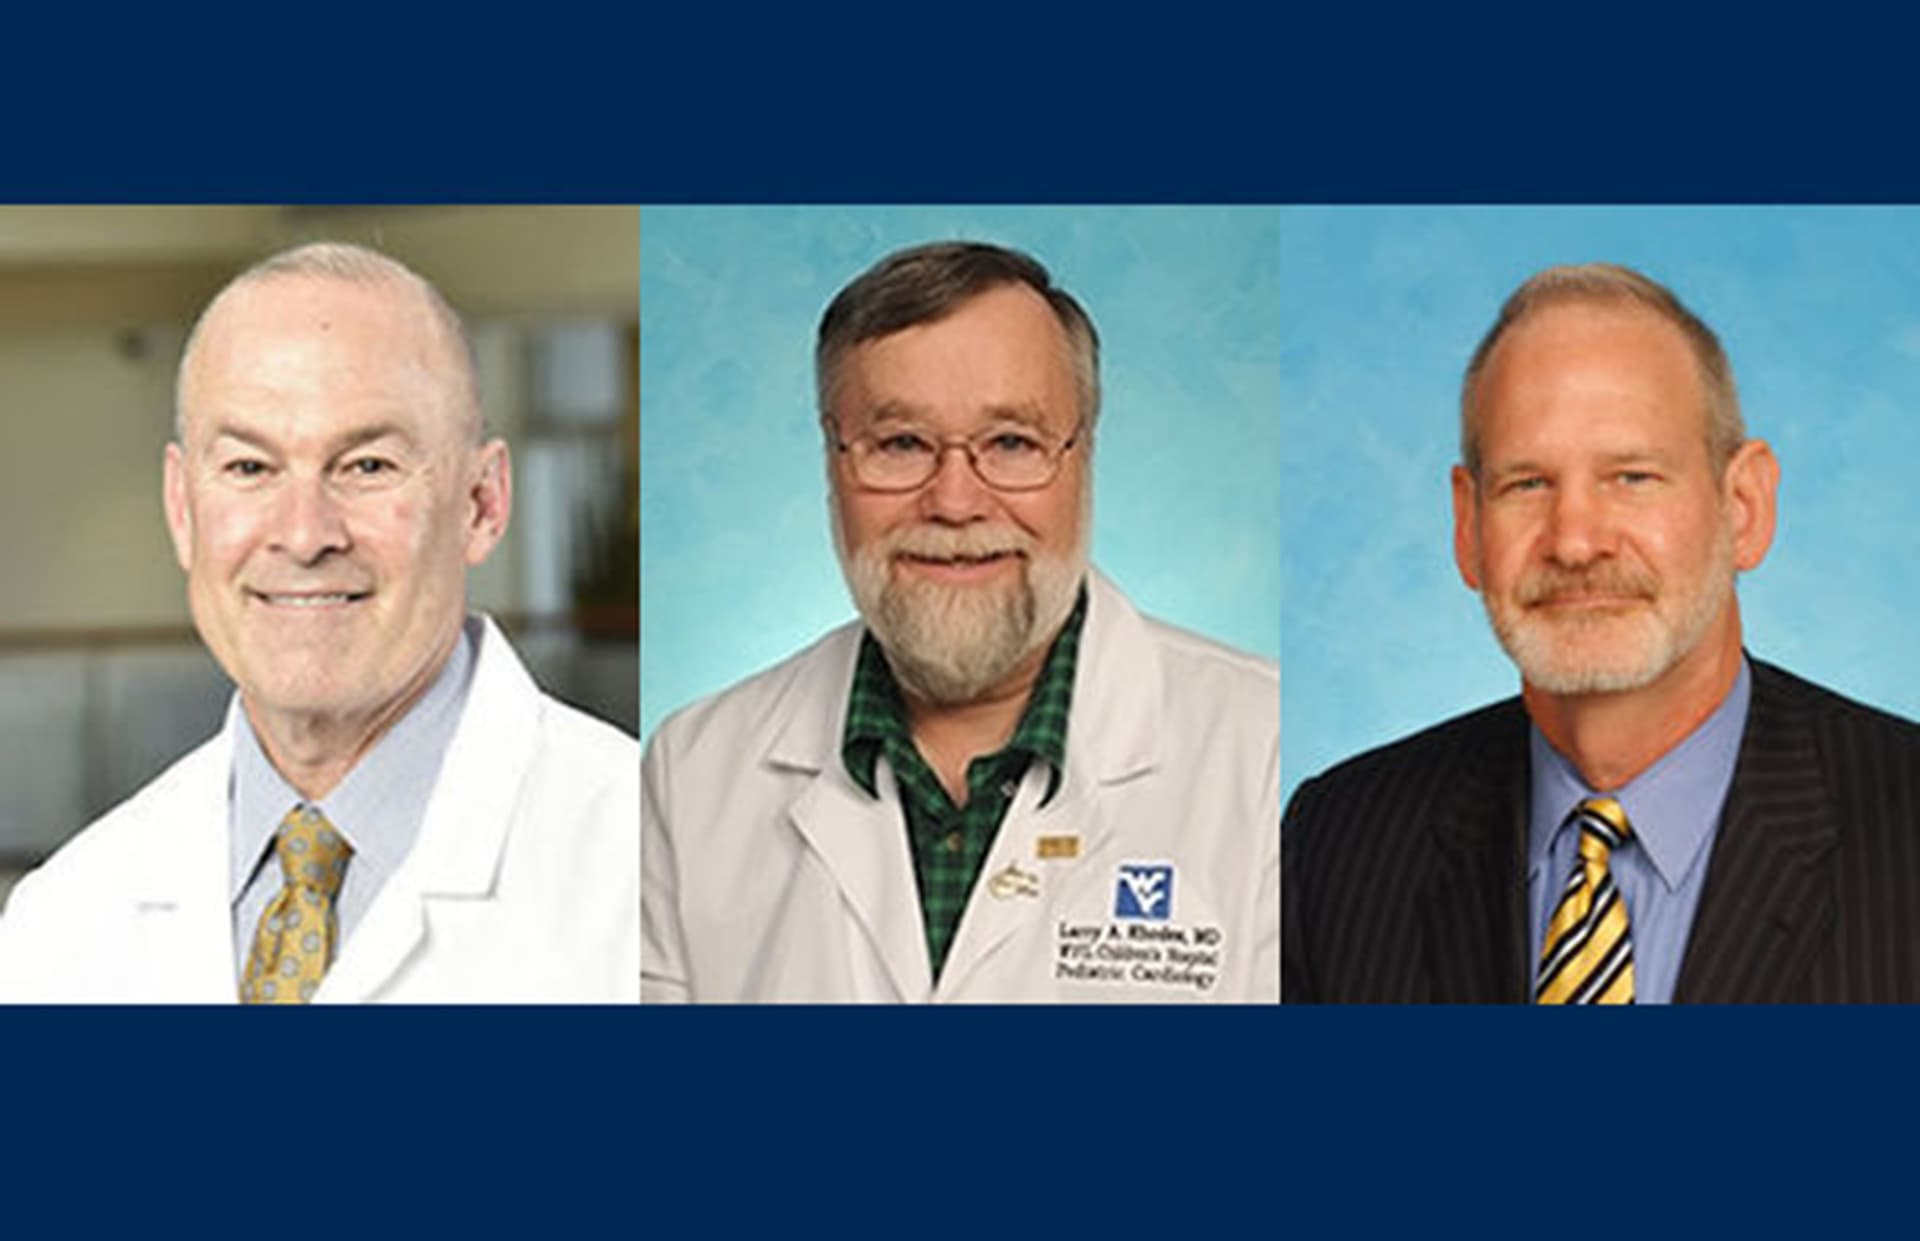 WVU physicians lead fundraising effort to support Mountaineer Food Bank